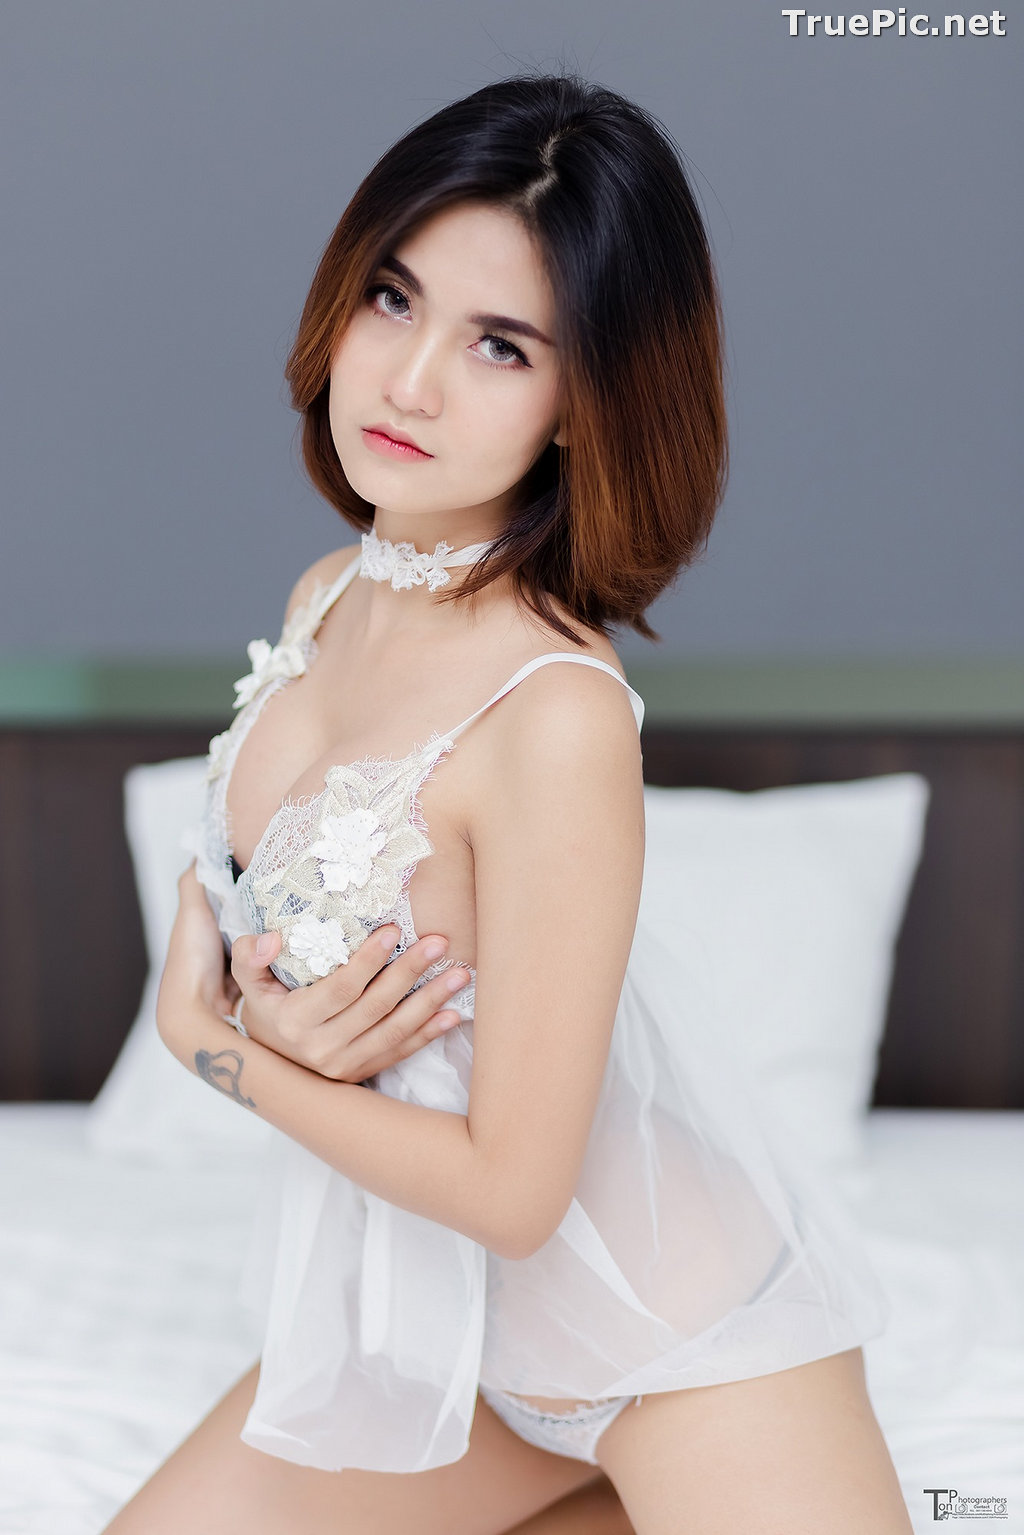 Image Thailand Sexy Model - Witsutar Ruechar - Beautiful Young Lady - TruePic.net - Picture-9